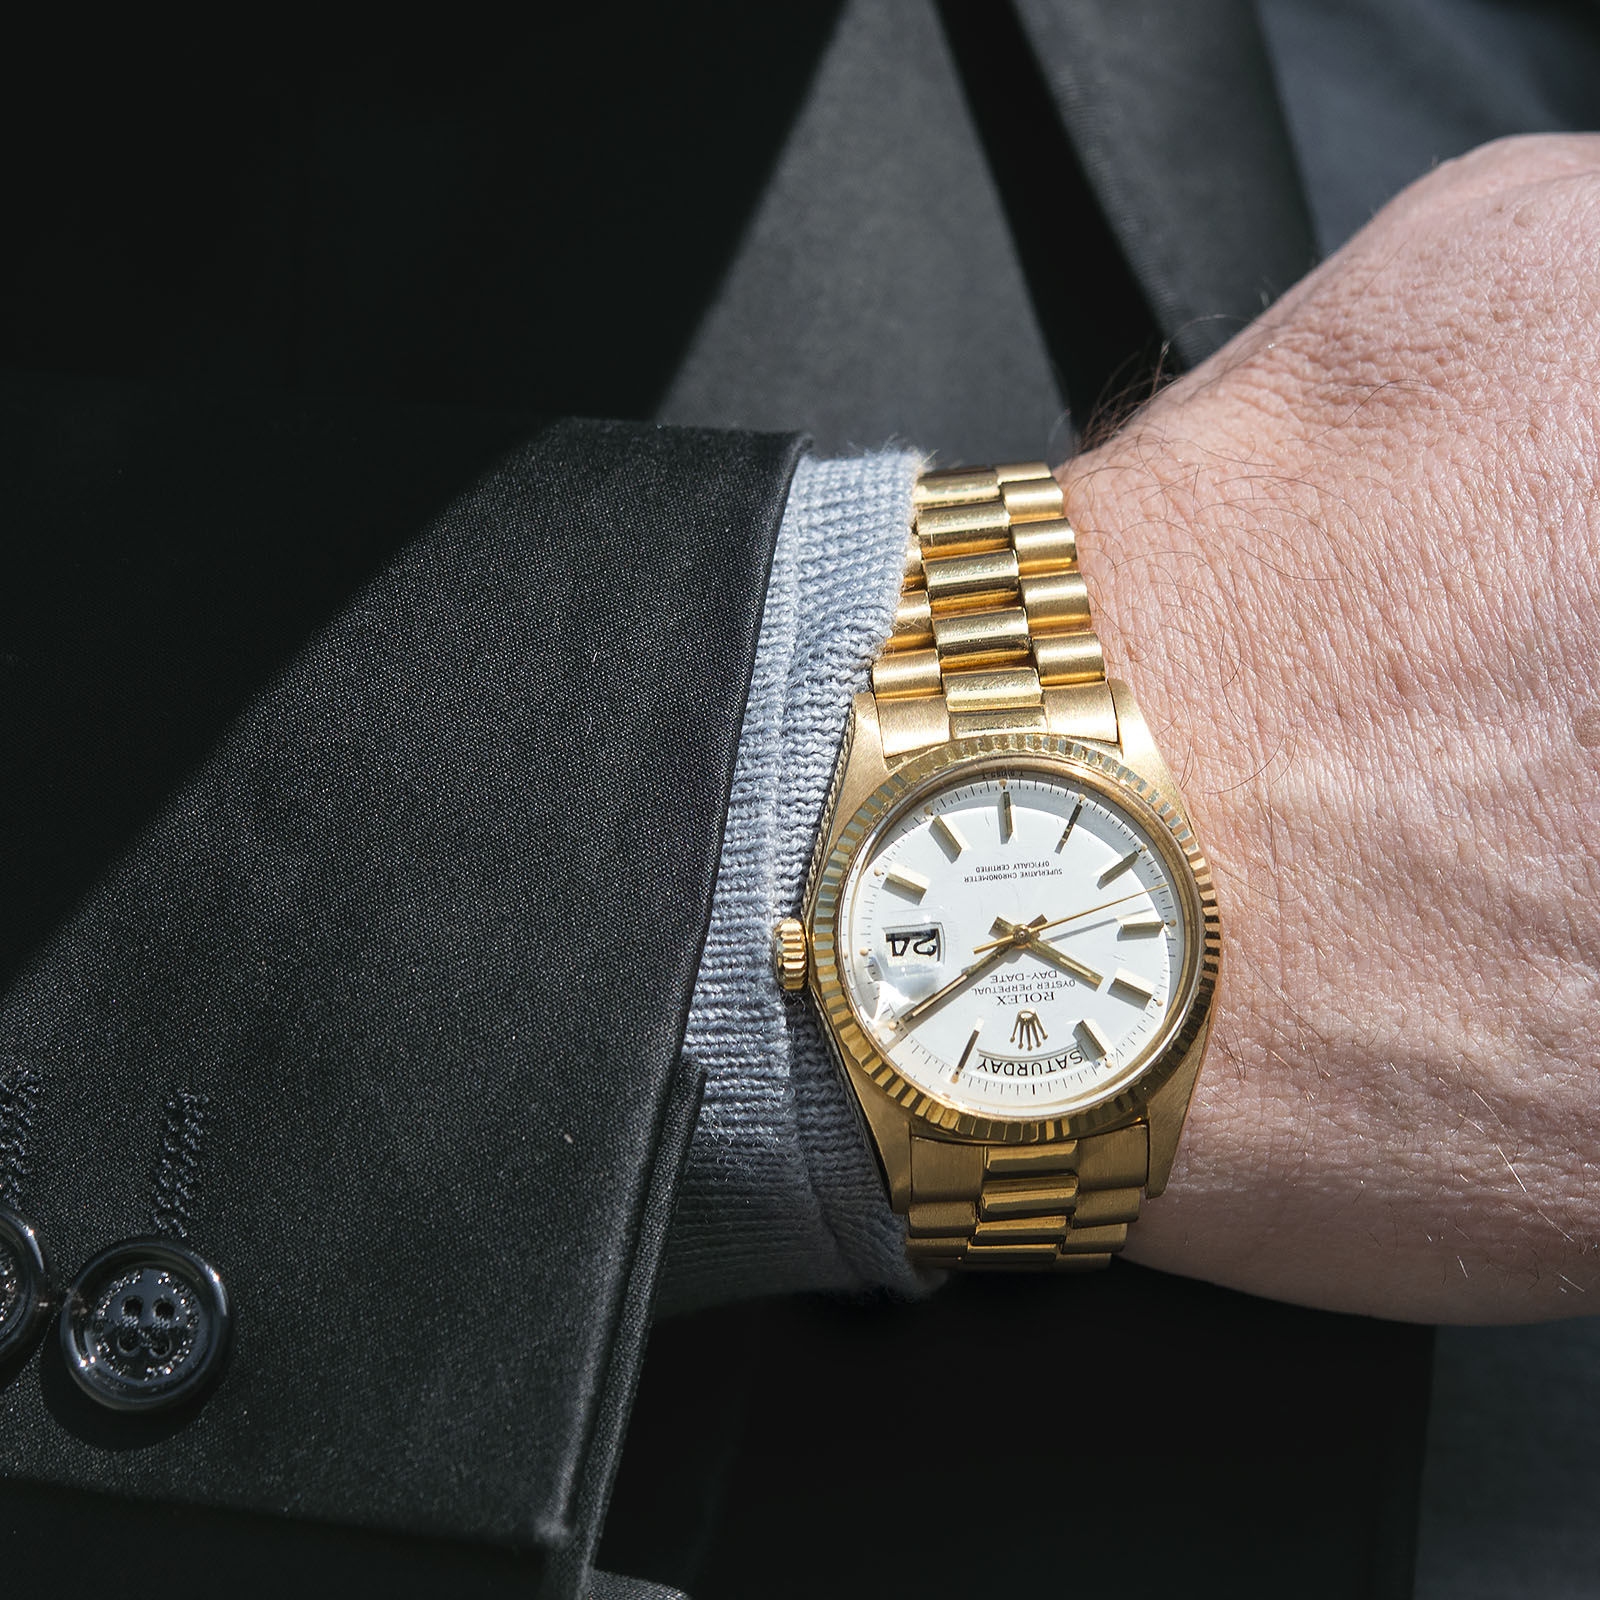 6c01461b124 The Rolex Day-Date - King of Versatility